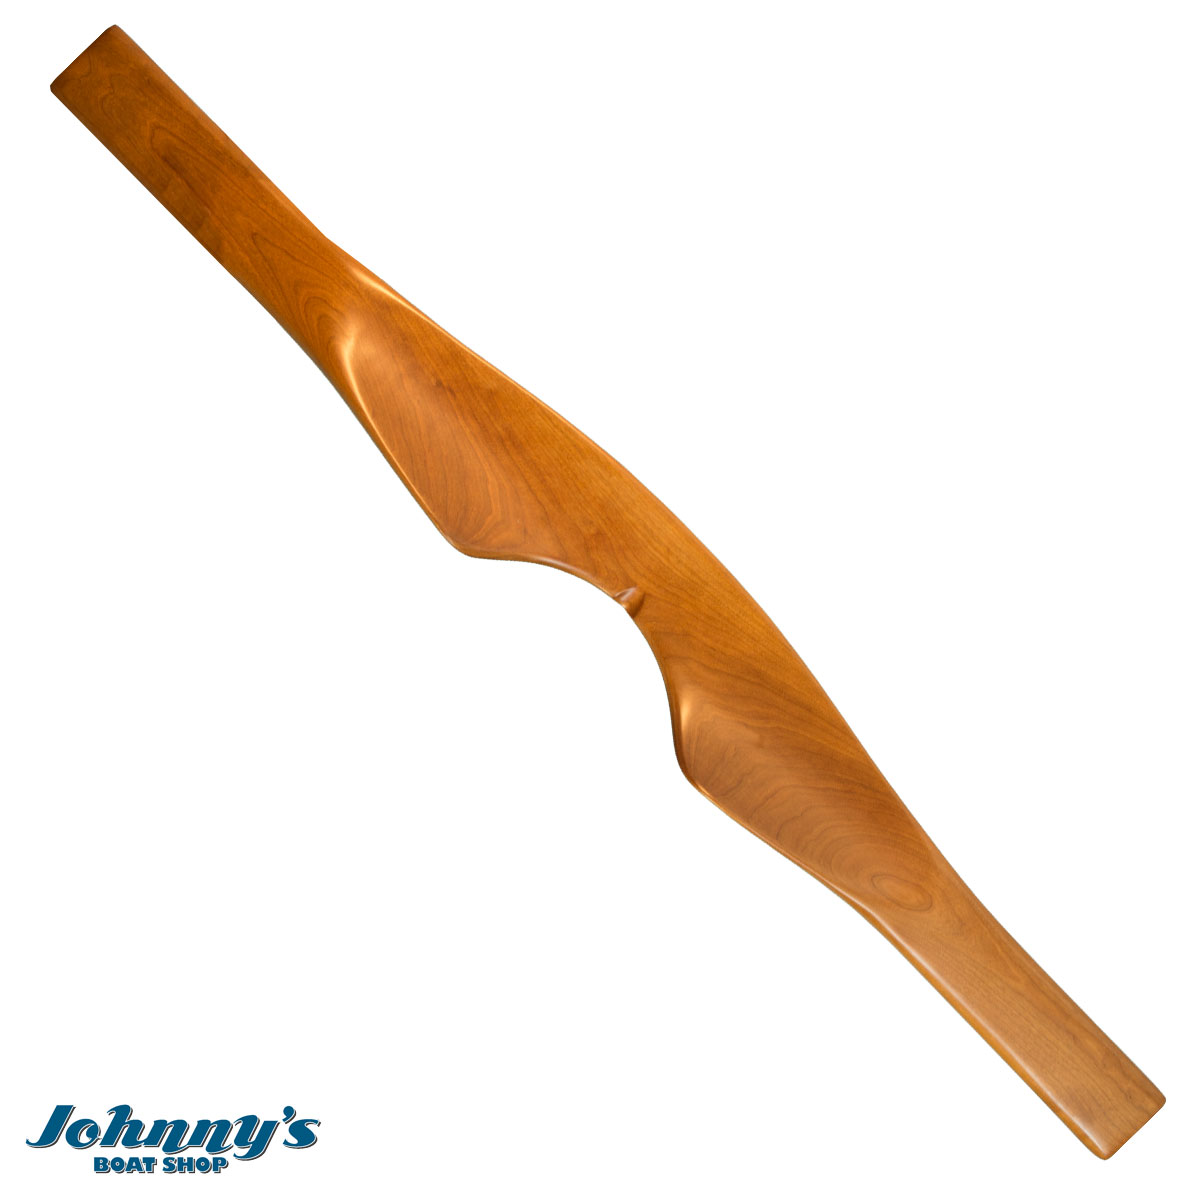 Cold Creek Canoe Cherry Contoured Yoke